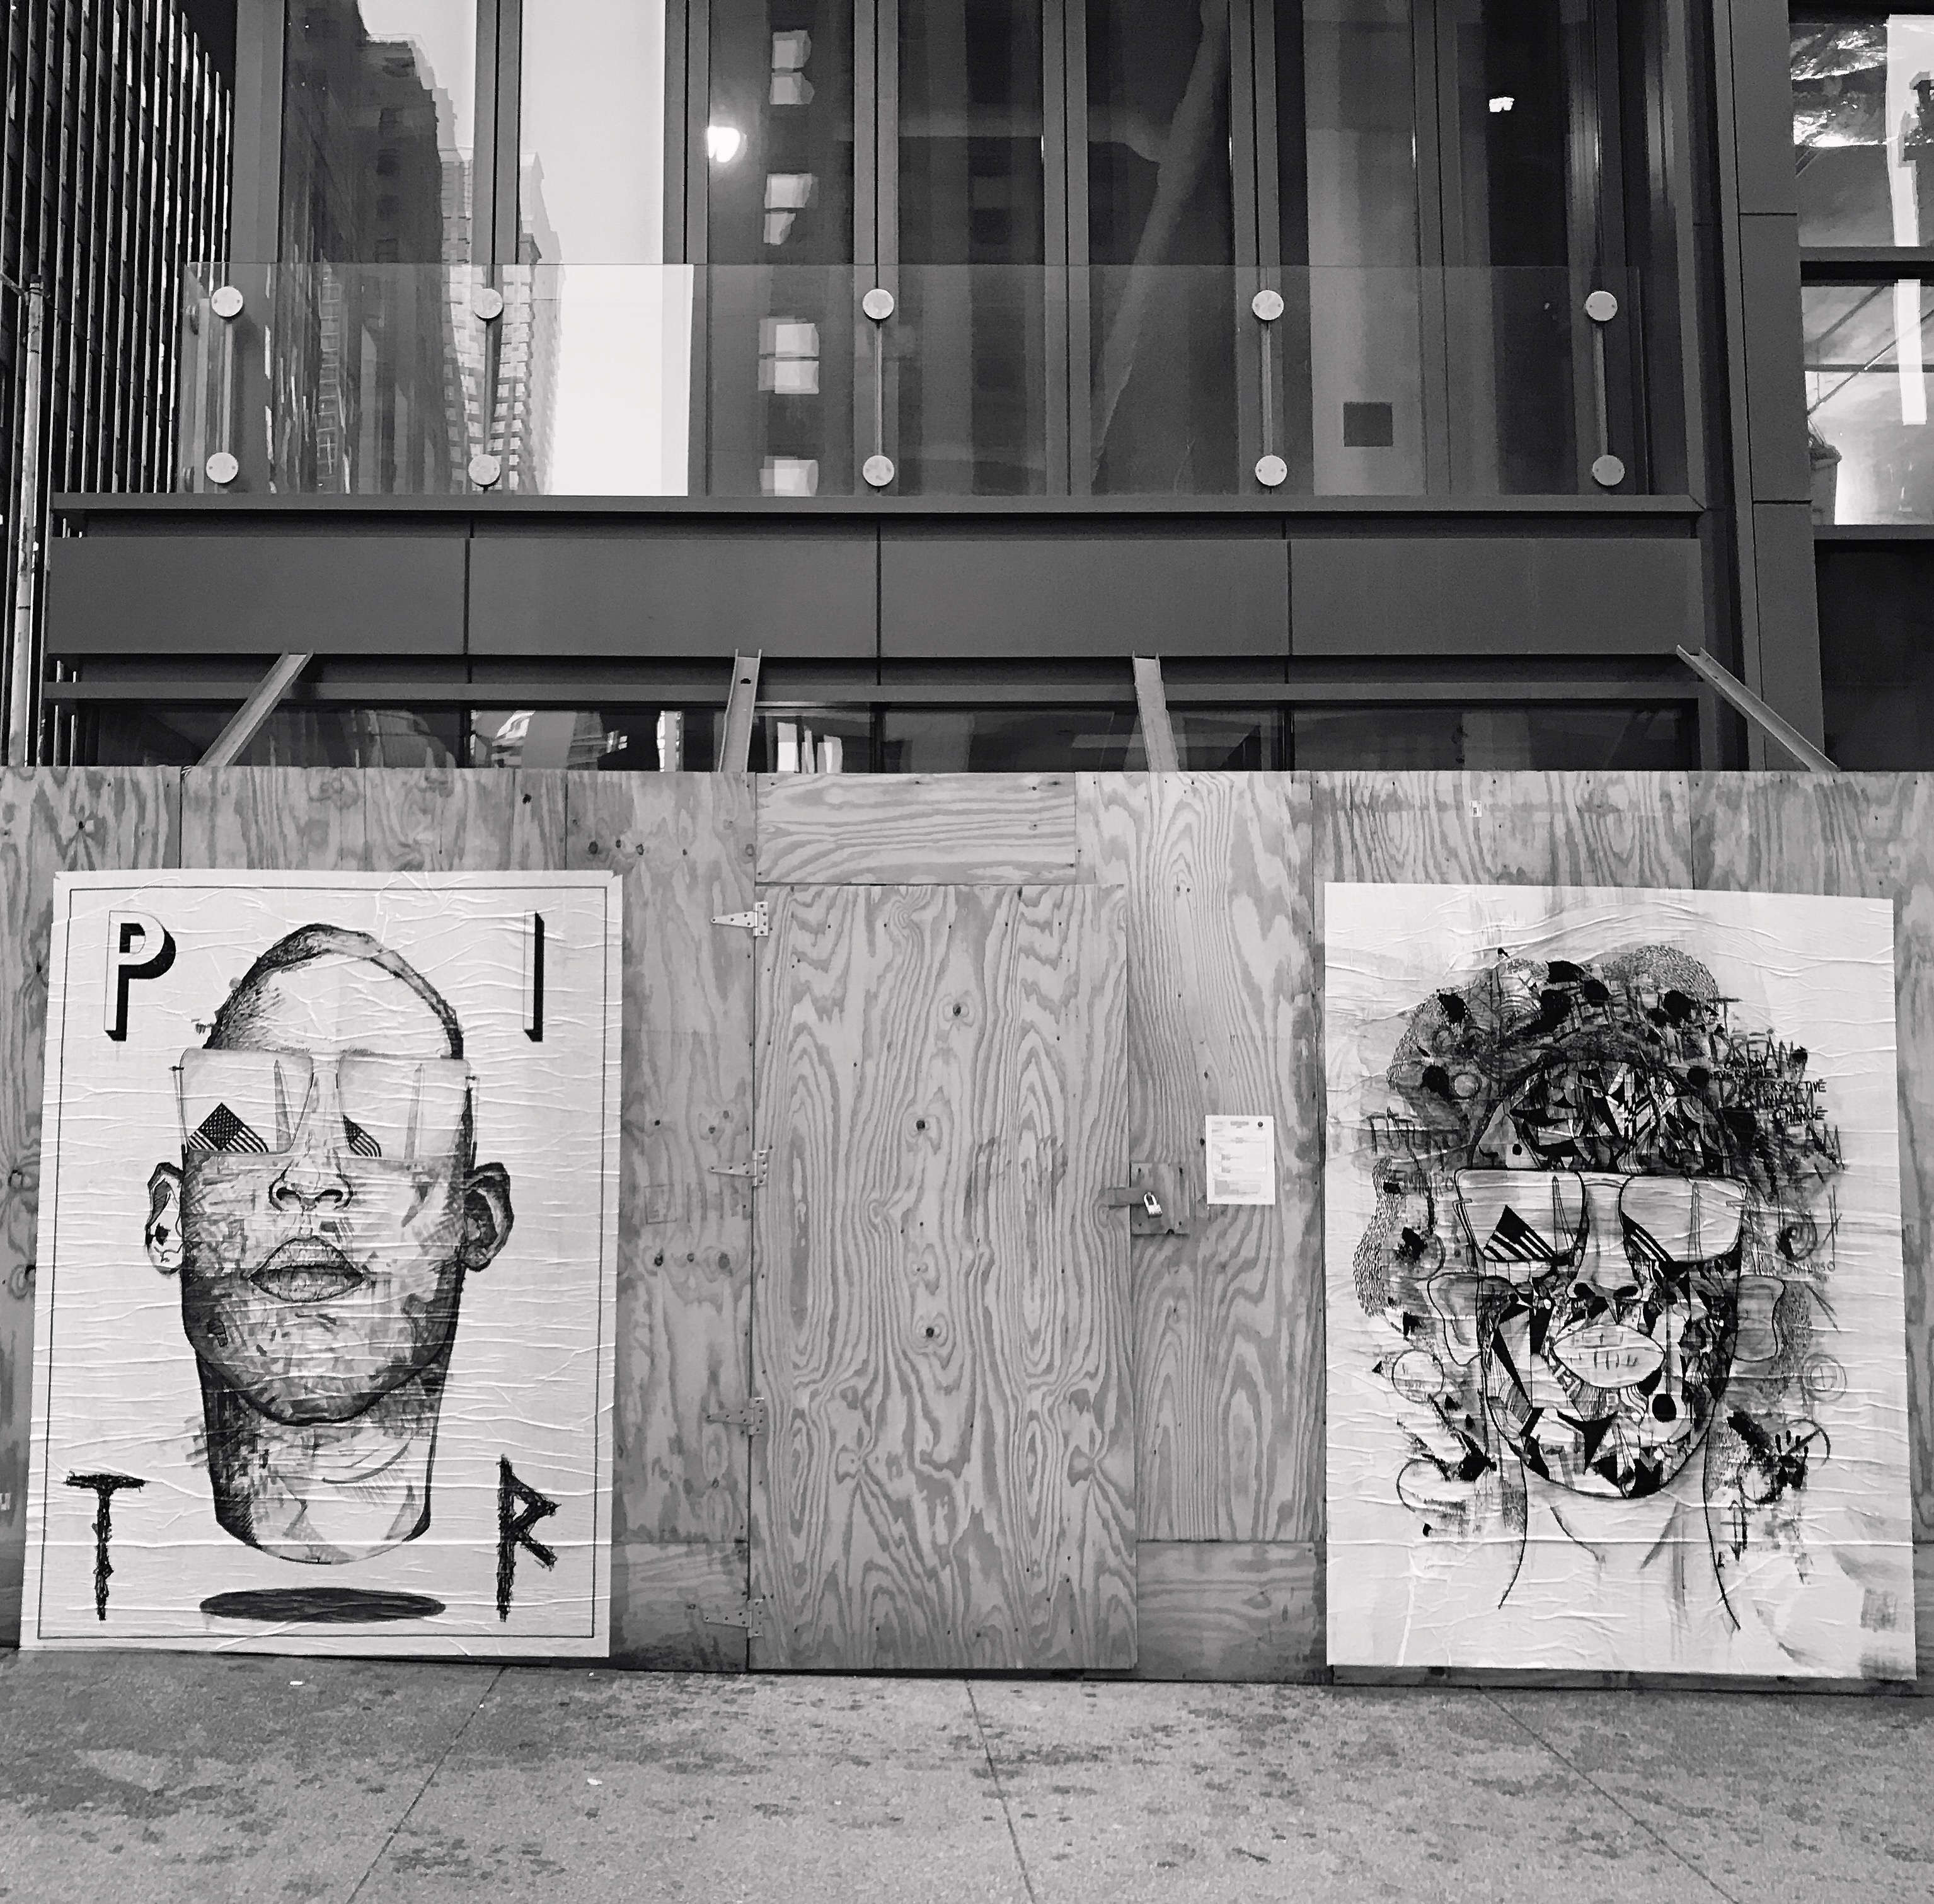 """PITR/Pizza In The Rain's Ambitious """"Good Example"""" Project in Chicago Artes & contextos Good Example 2 Portrait of Austin Clinton Brown Roland Santana x PITR"""